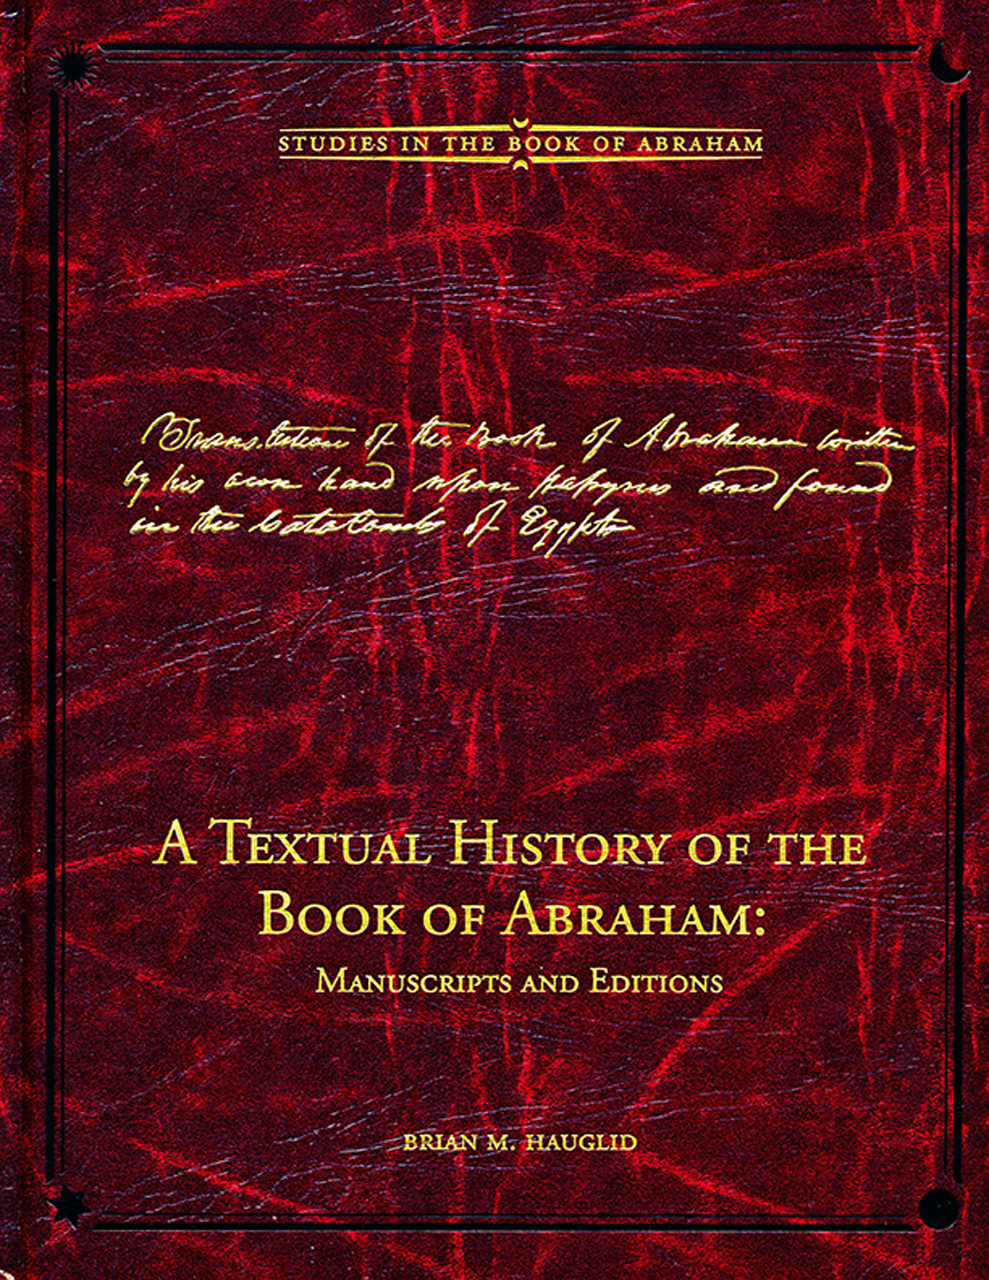 Textual History of the Book of Abraham